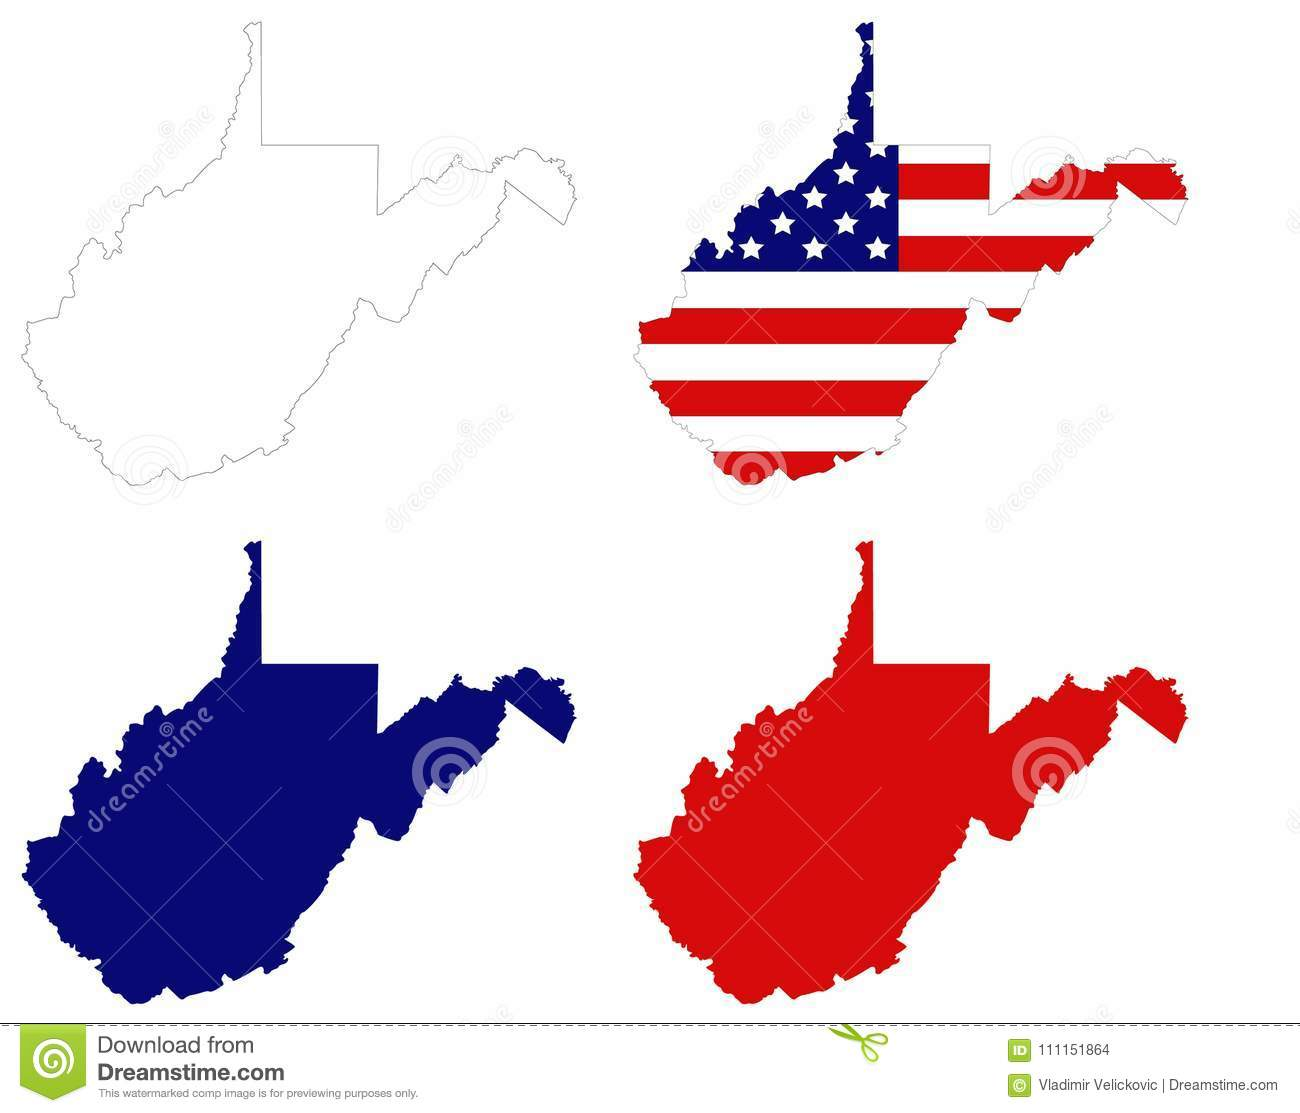 West Virginia Map With USA Flag - State In The Appalachian Region Of ...